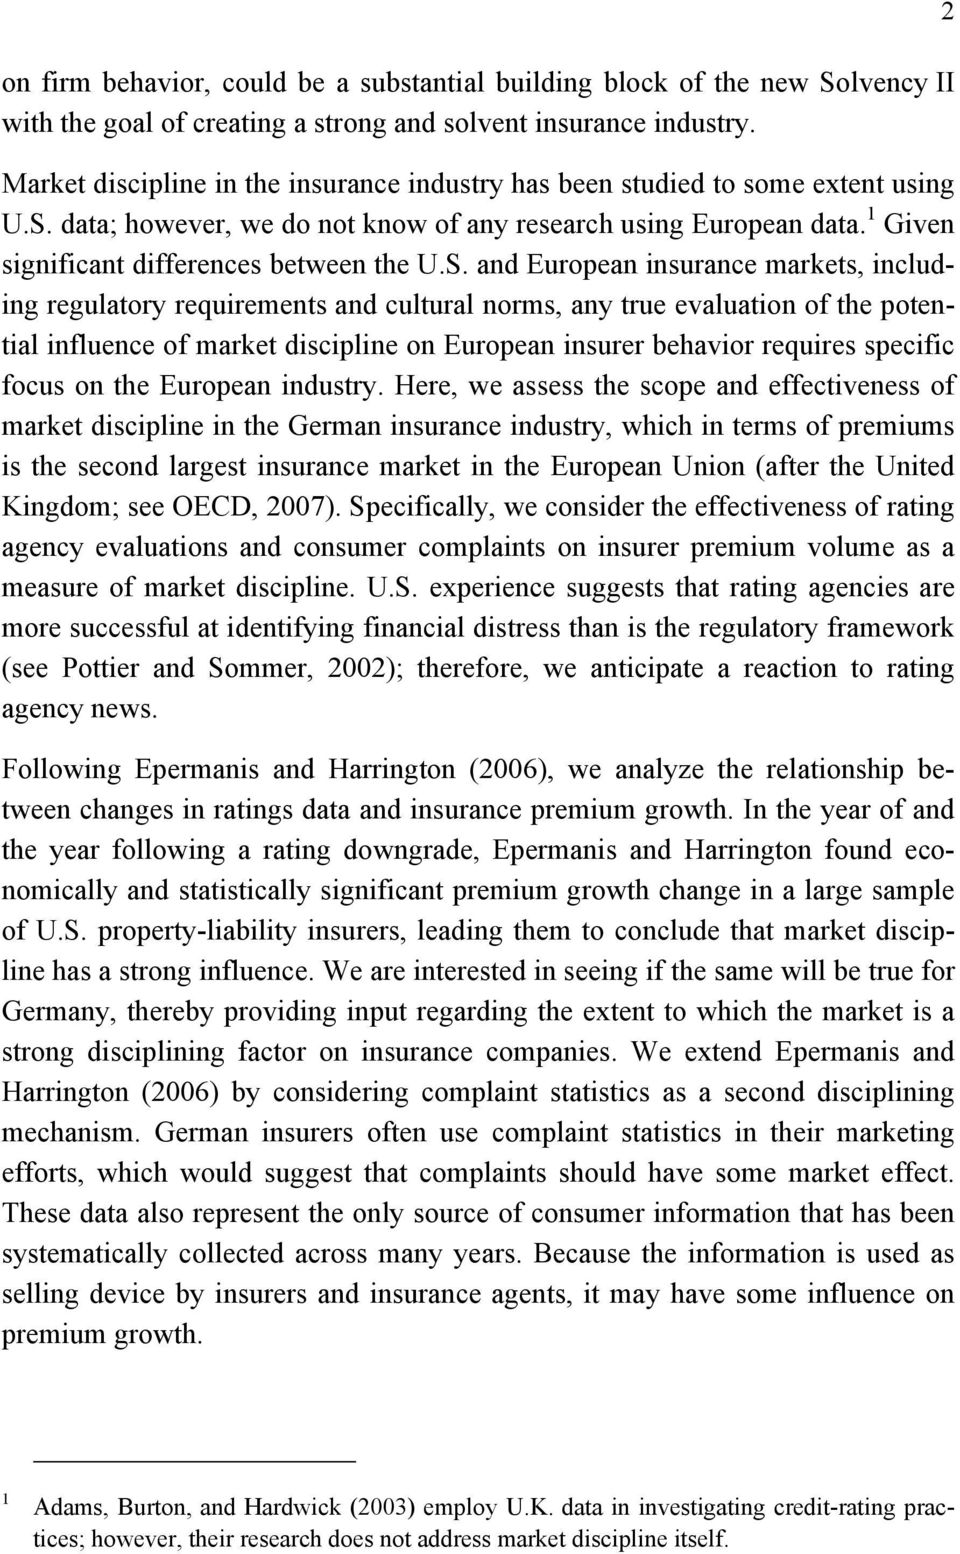 S. and European insurance markets, including regulatory requirements and cultural norms, any true evaluation of the potential influence of market discipline on European insurer behavior requires